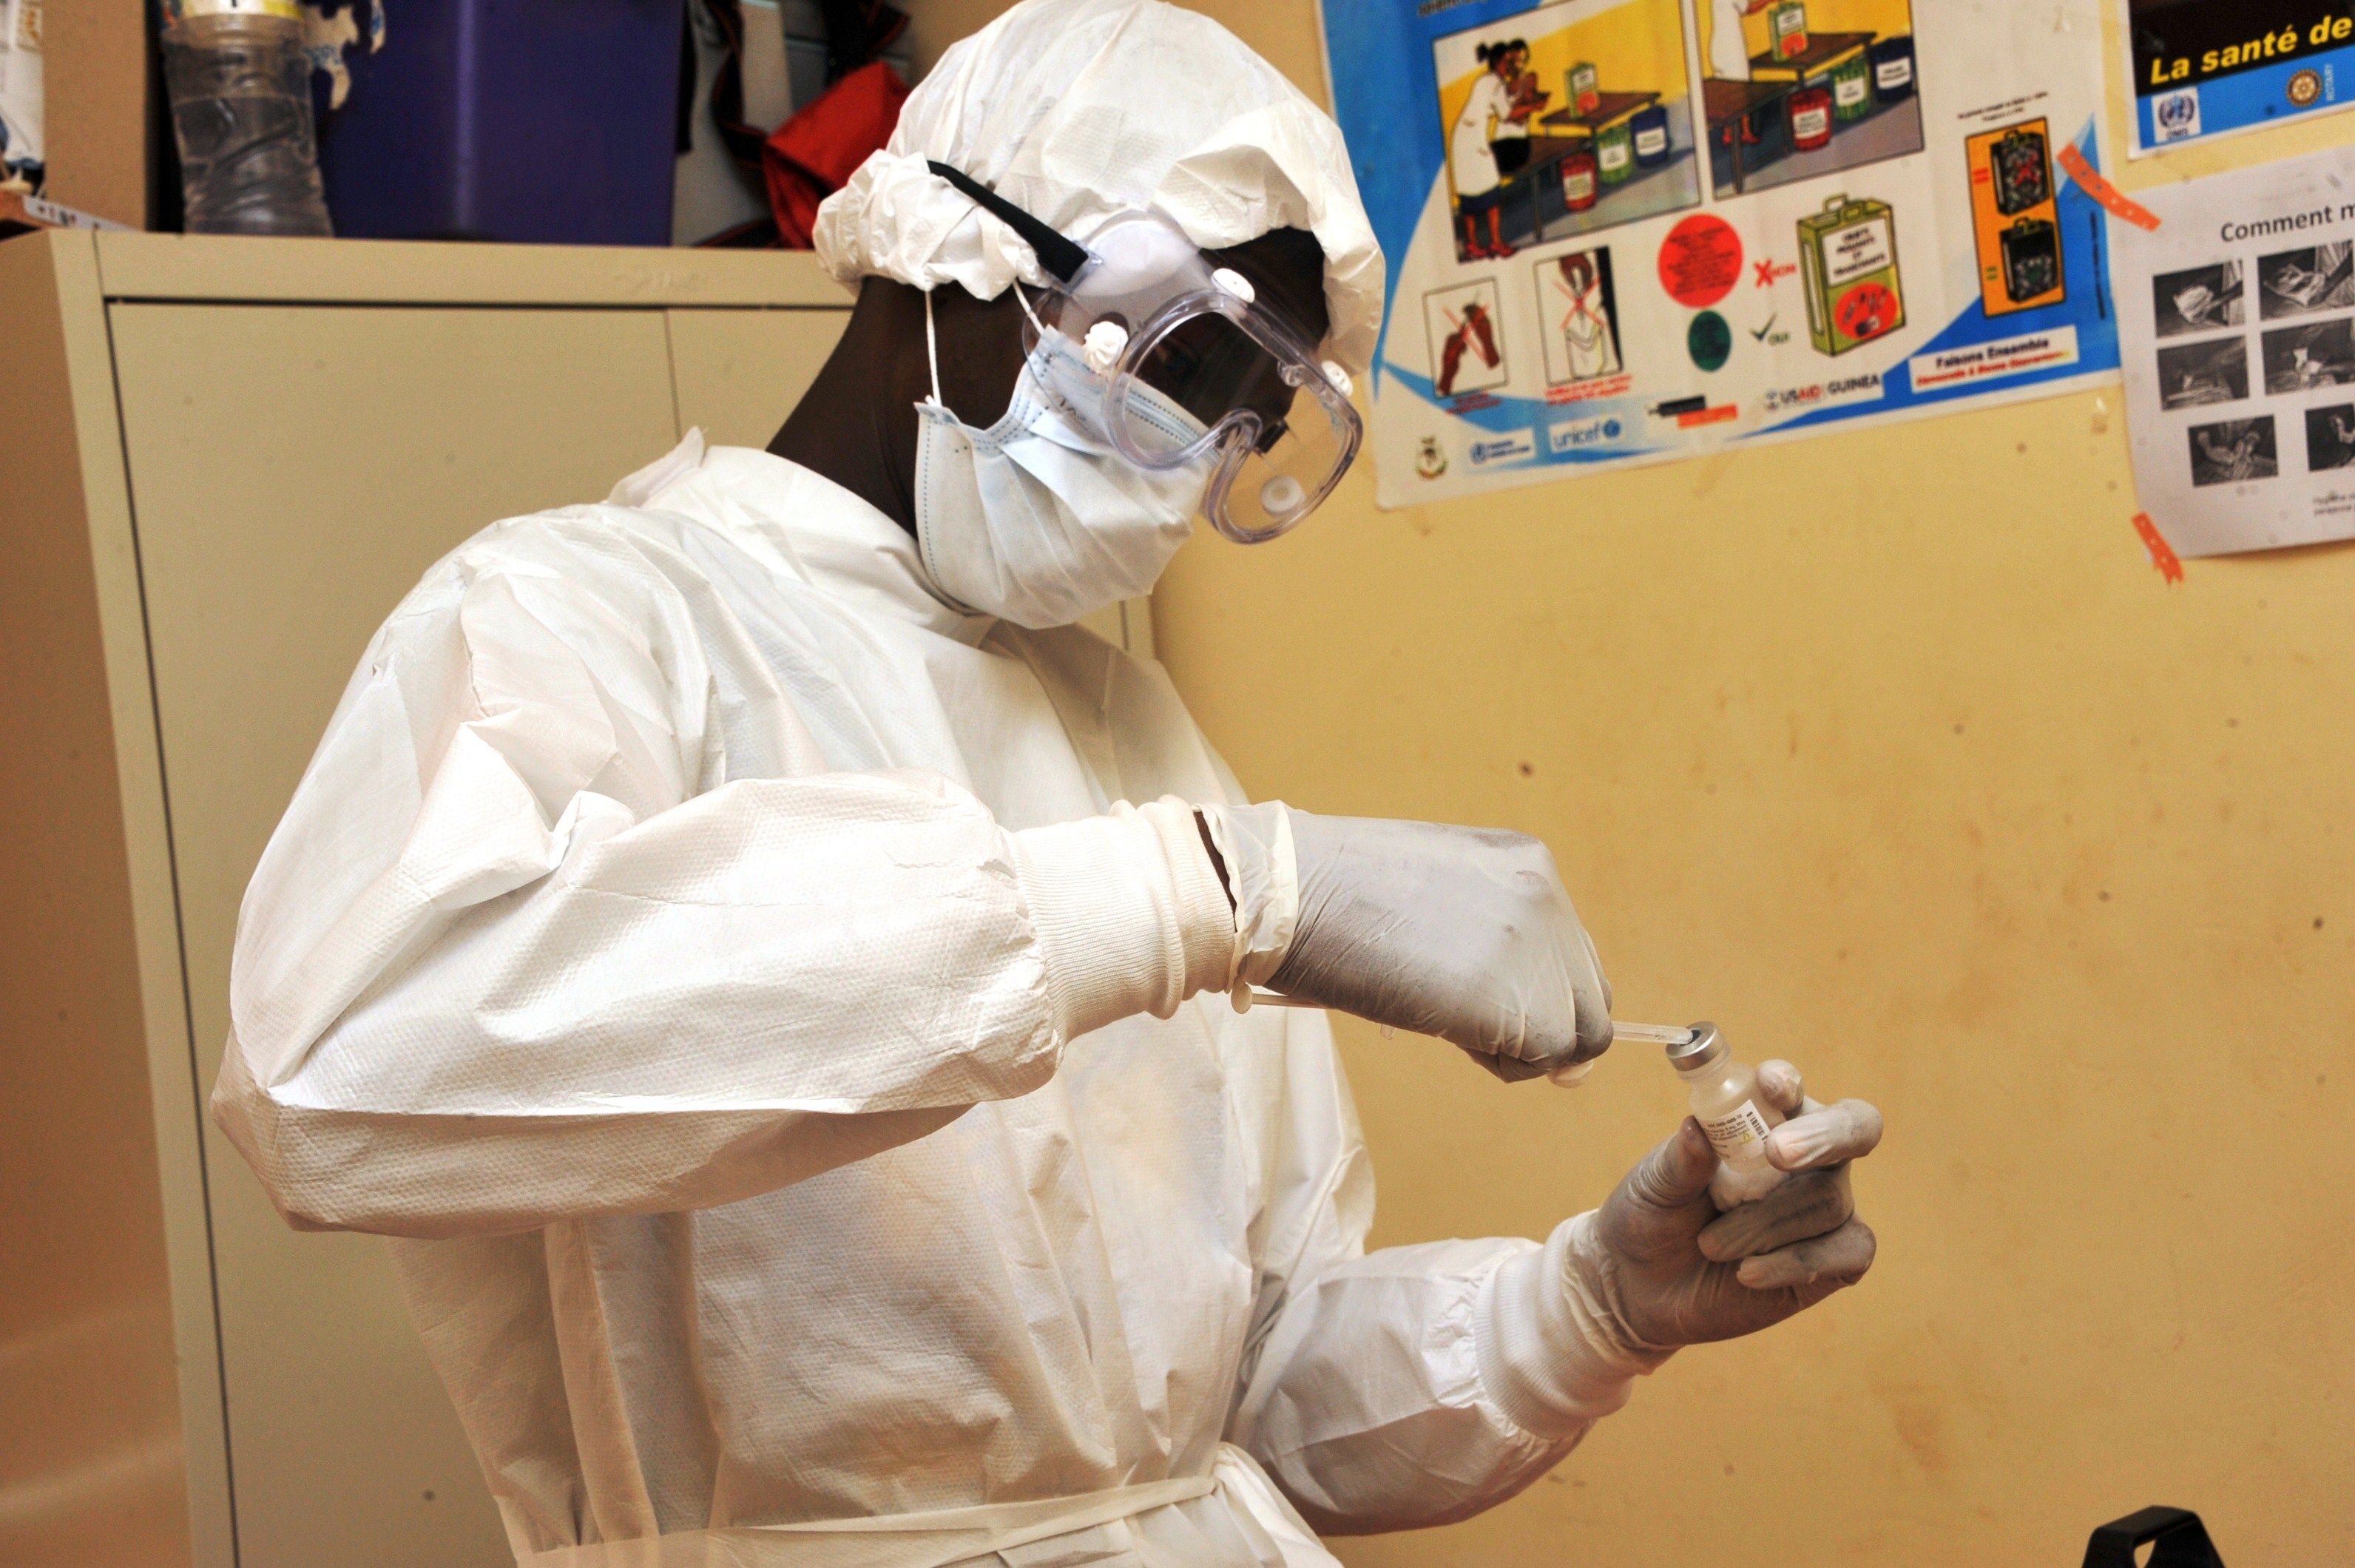 A health worker prepares a vaccination on March 10, 2015 at a health center in Guinea during the first clinical trials of an ebola vaccine.